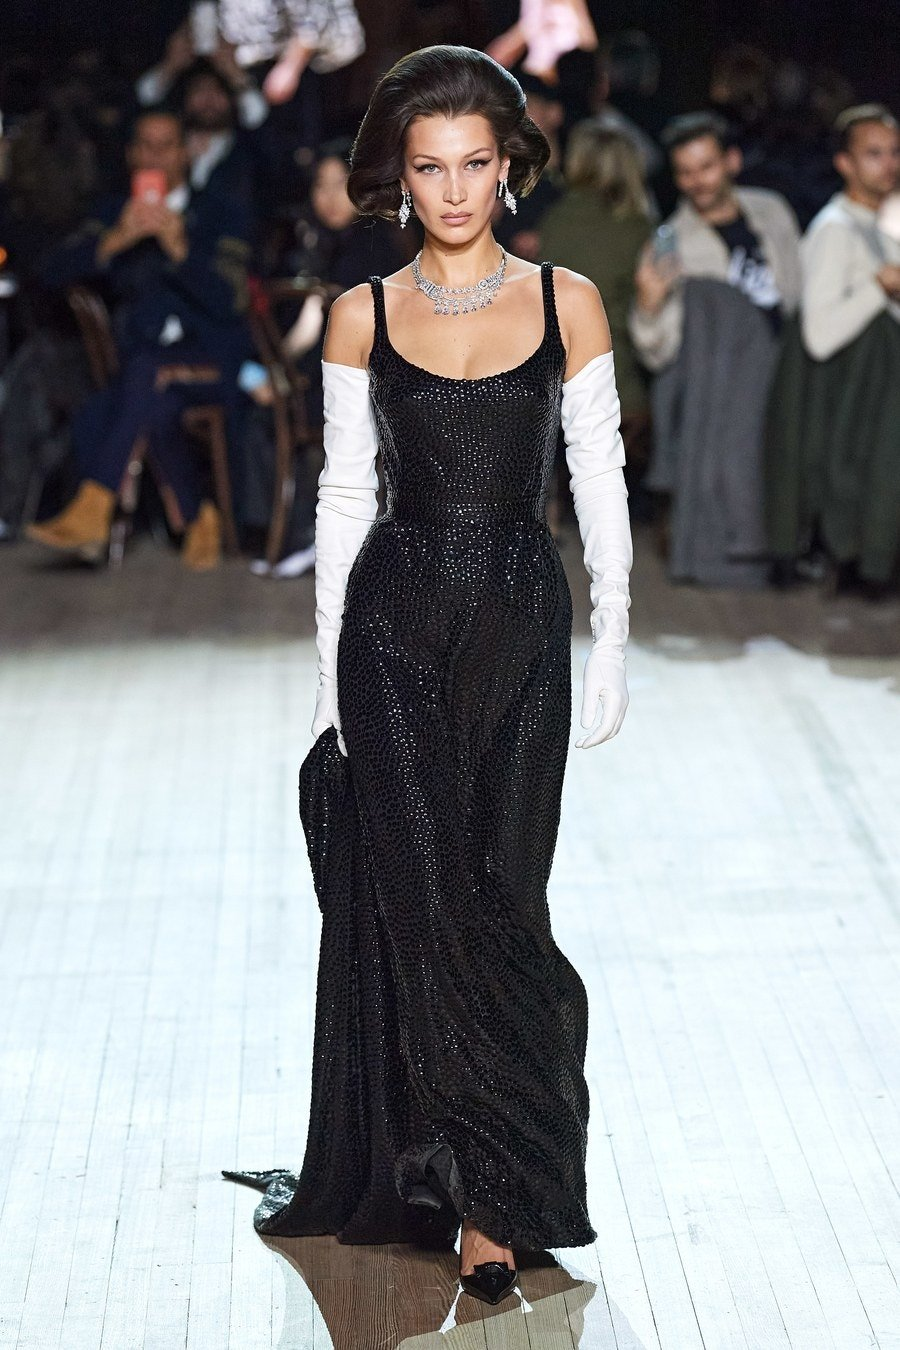 Bella Hadid channels inner princess on Marc Jacobs catwalk at New York Fashion Week